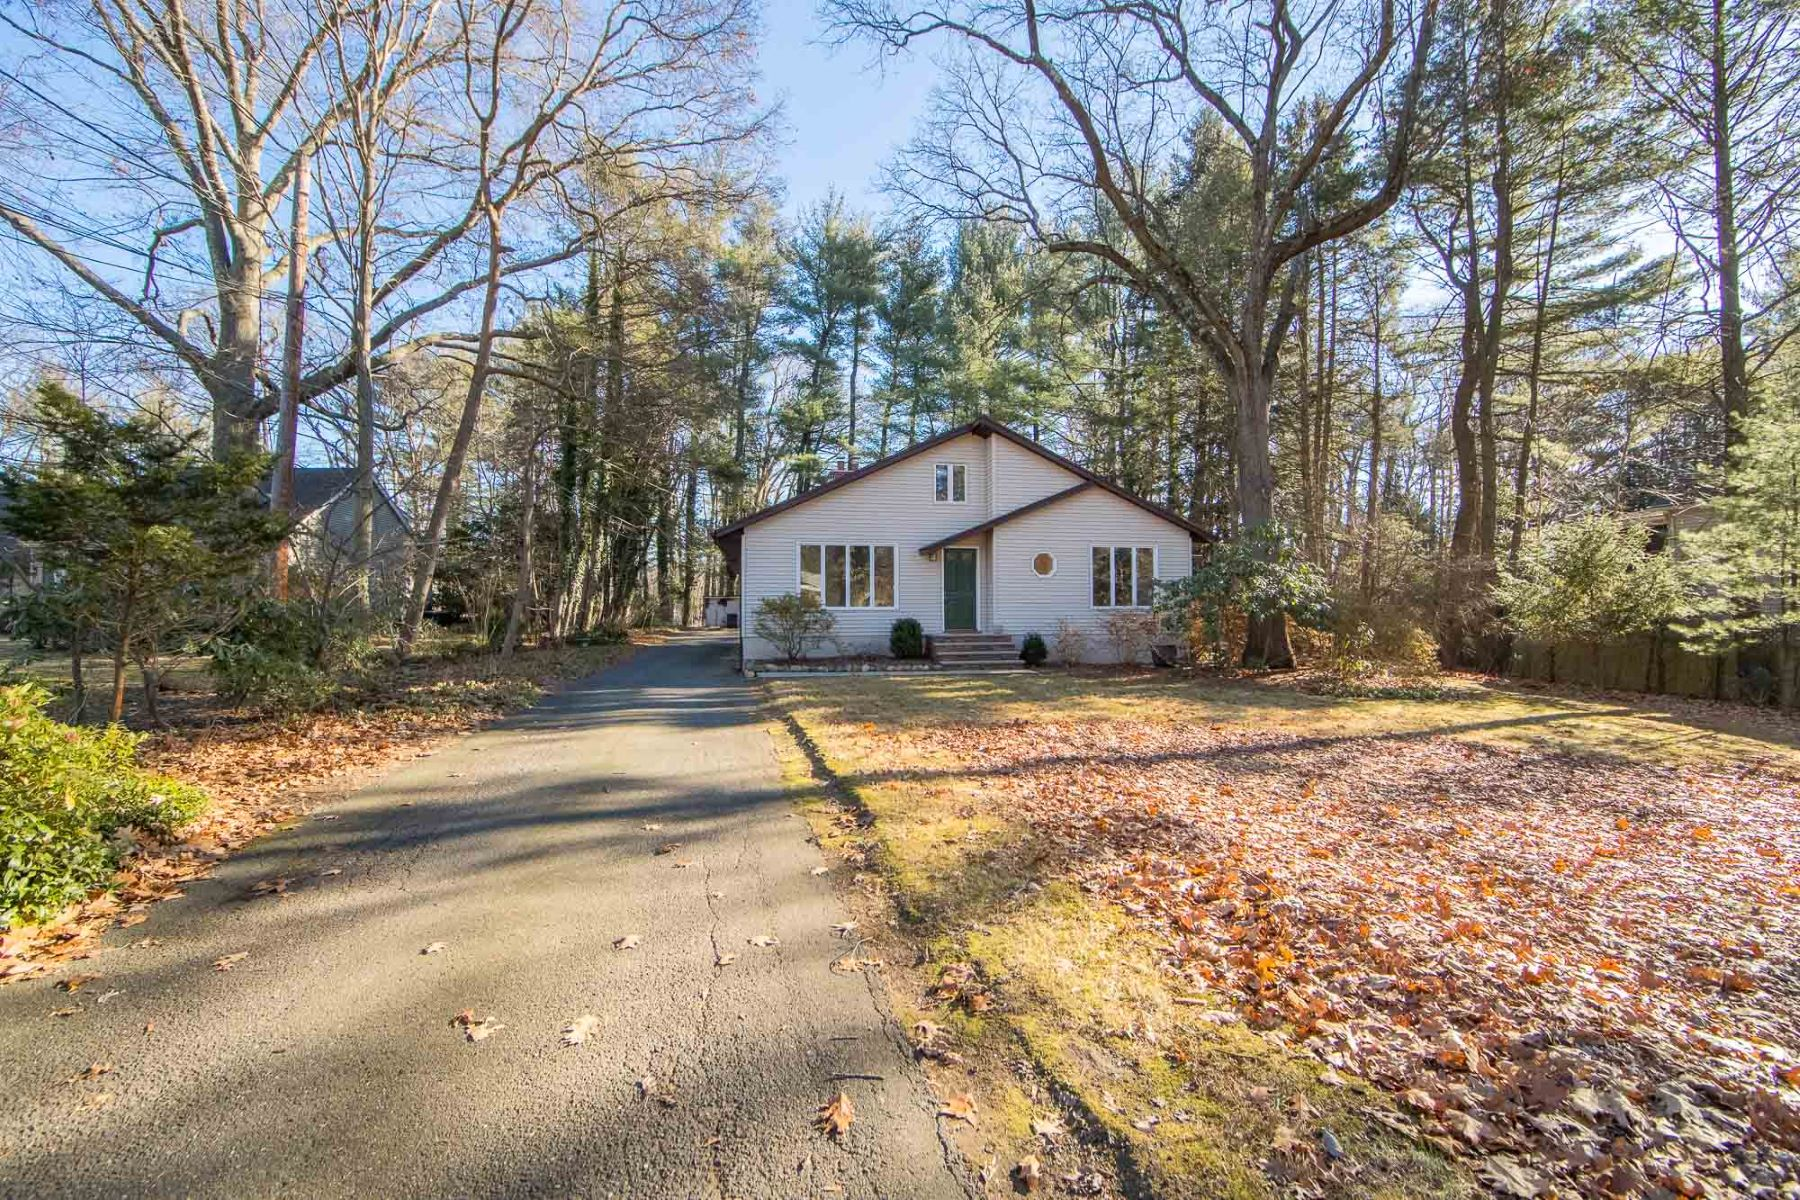 Single Family Home for Sale at Privacy and Beautiful Views 5 Ackerman Ave, Woodcliff Lake, New Jersey 07677 United States